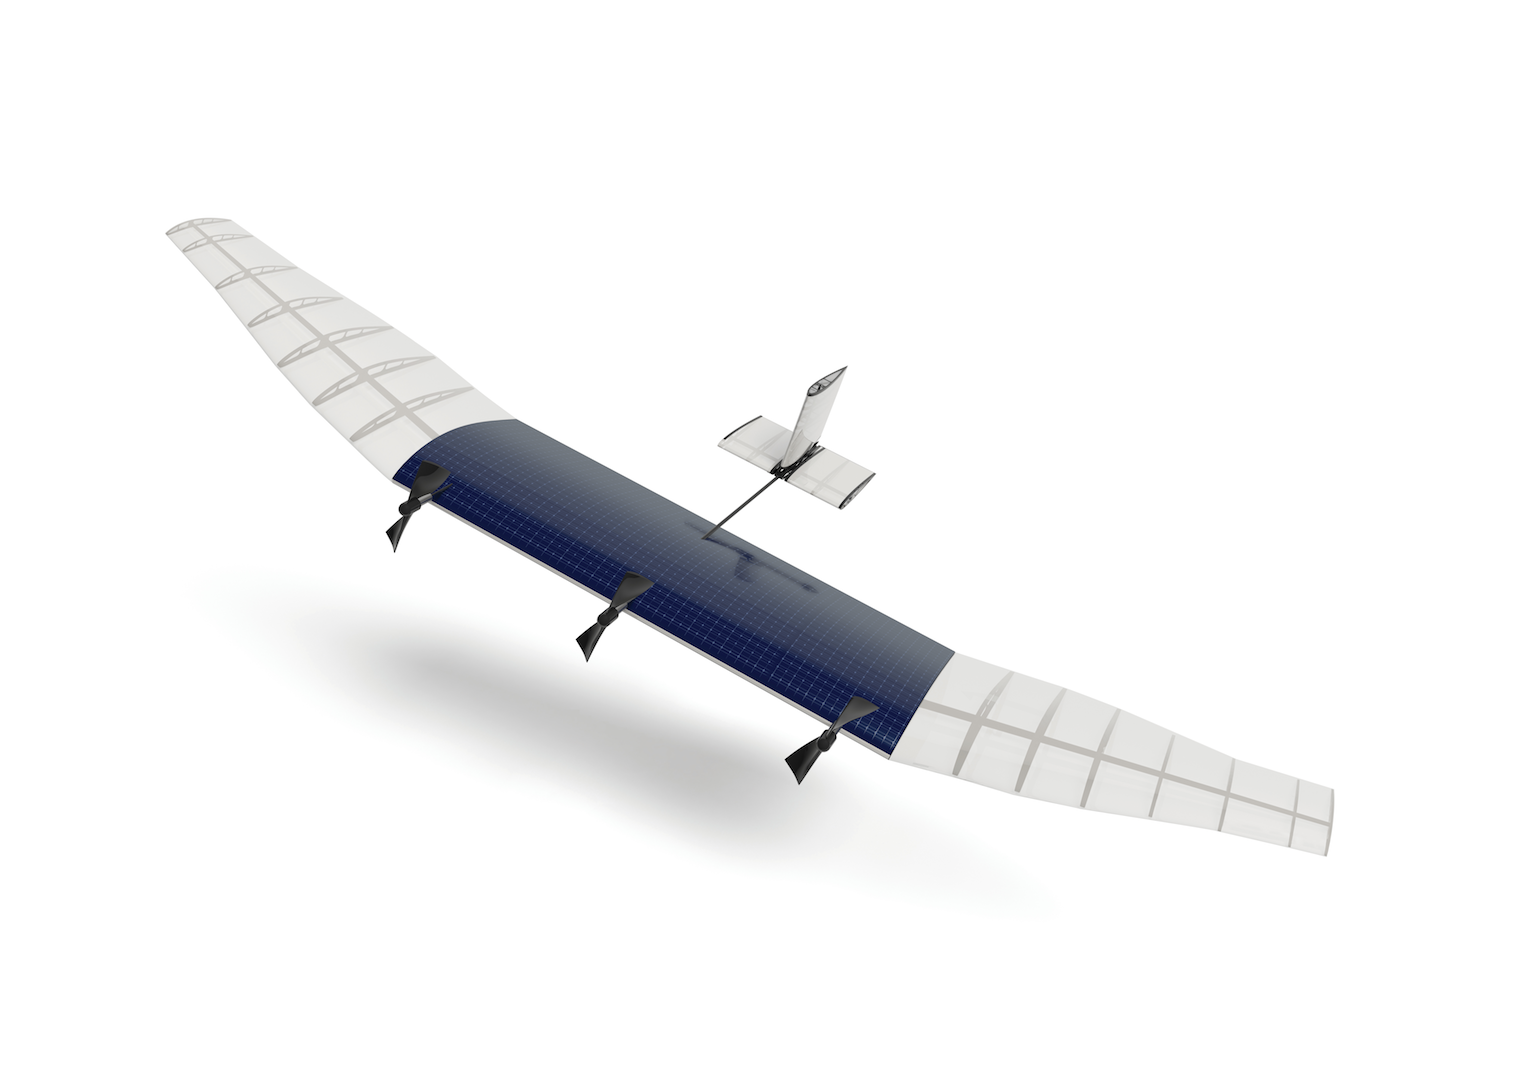 Facebook Reveals Its Plan For Solar Powered Uavs News